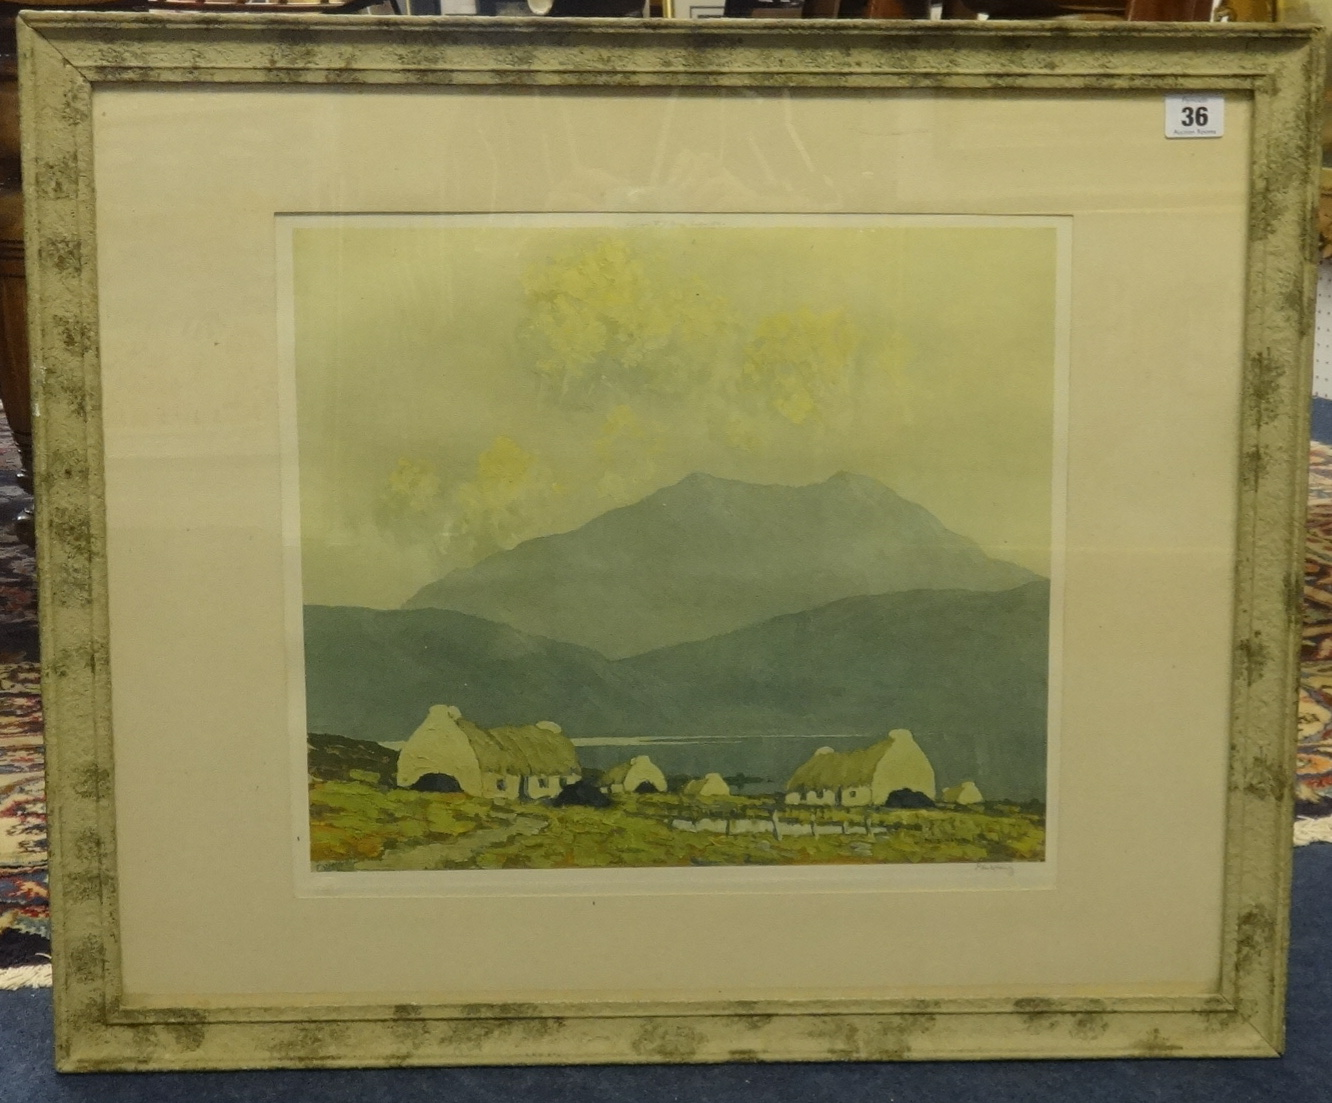 Lot 36 - After Paul Henry, coloured print, Irish landscape, signed in pencil, 36cm x 40cm.